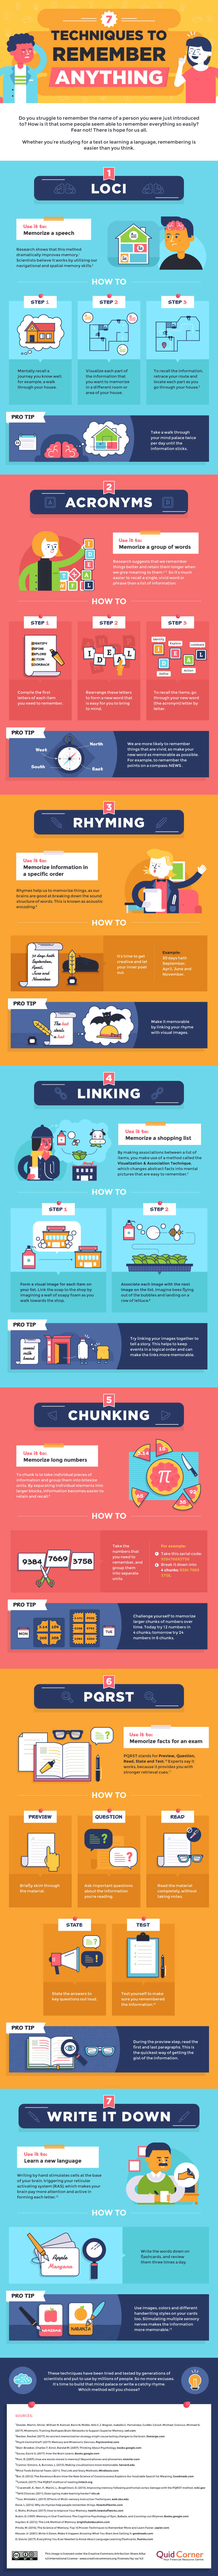 Does Your Memory Need a Booster Dose? 7 Foolproof Techniques - Infographic